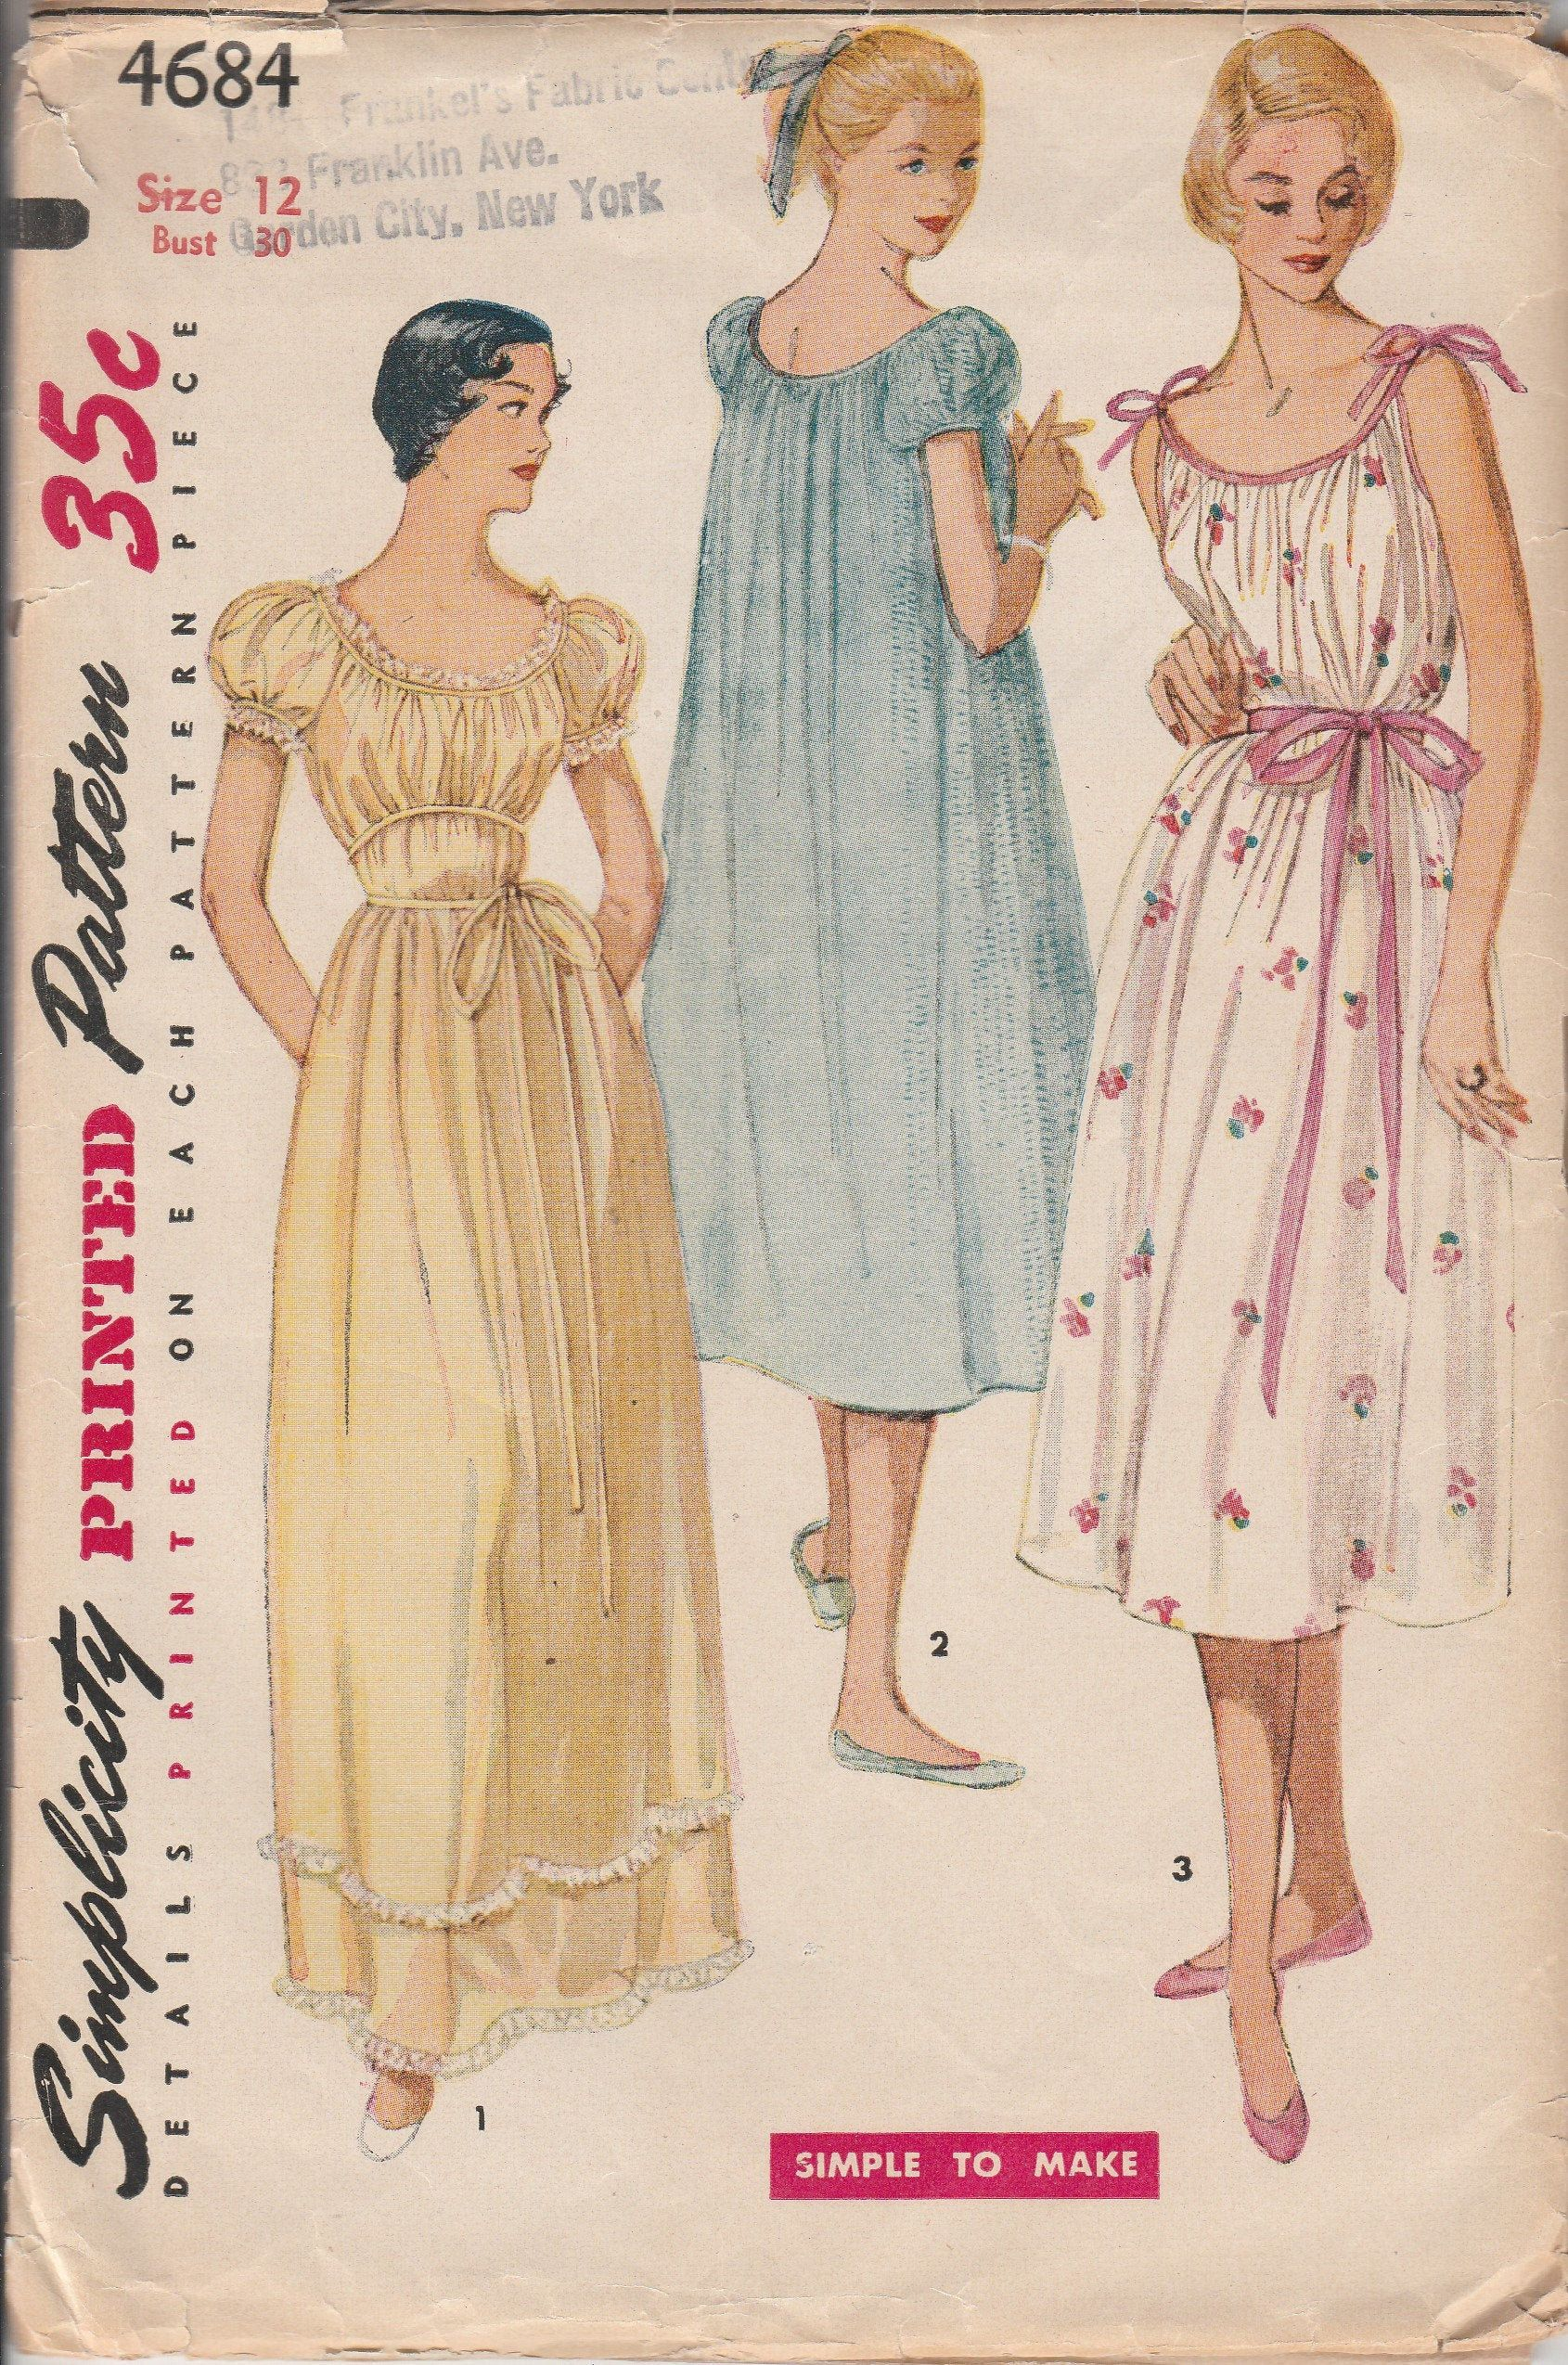 1950s Sewing Patterns 50s Nightgown Grecian Style Loose Fit Puff Sleeves 2 Lengths Size Xs Simplicity 4684 Simple To Make Bust 30 In In 2020 Gown Pattern Night Gown Nightgown Pattern